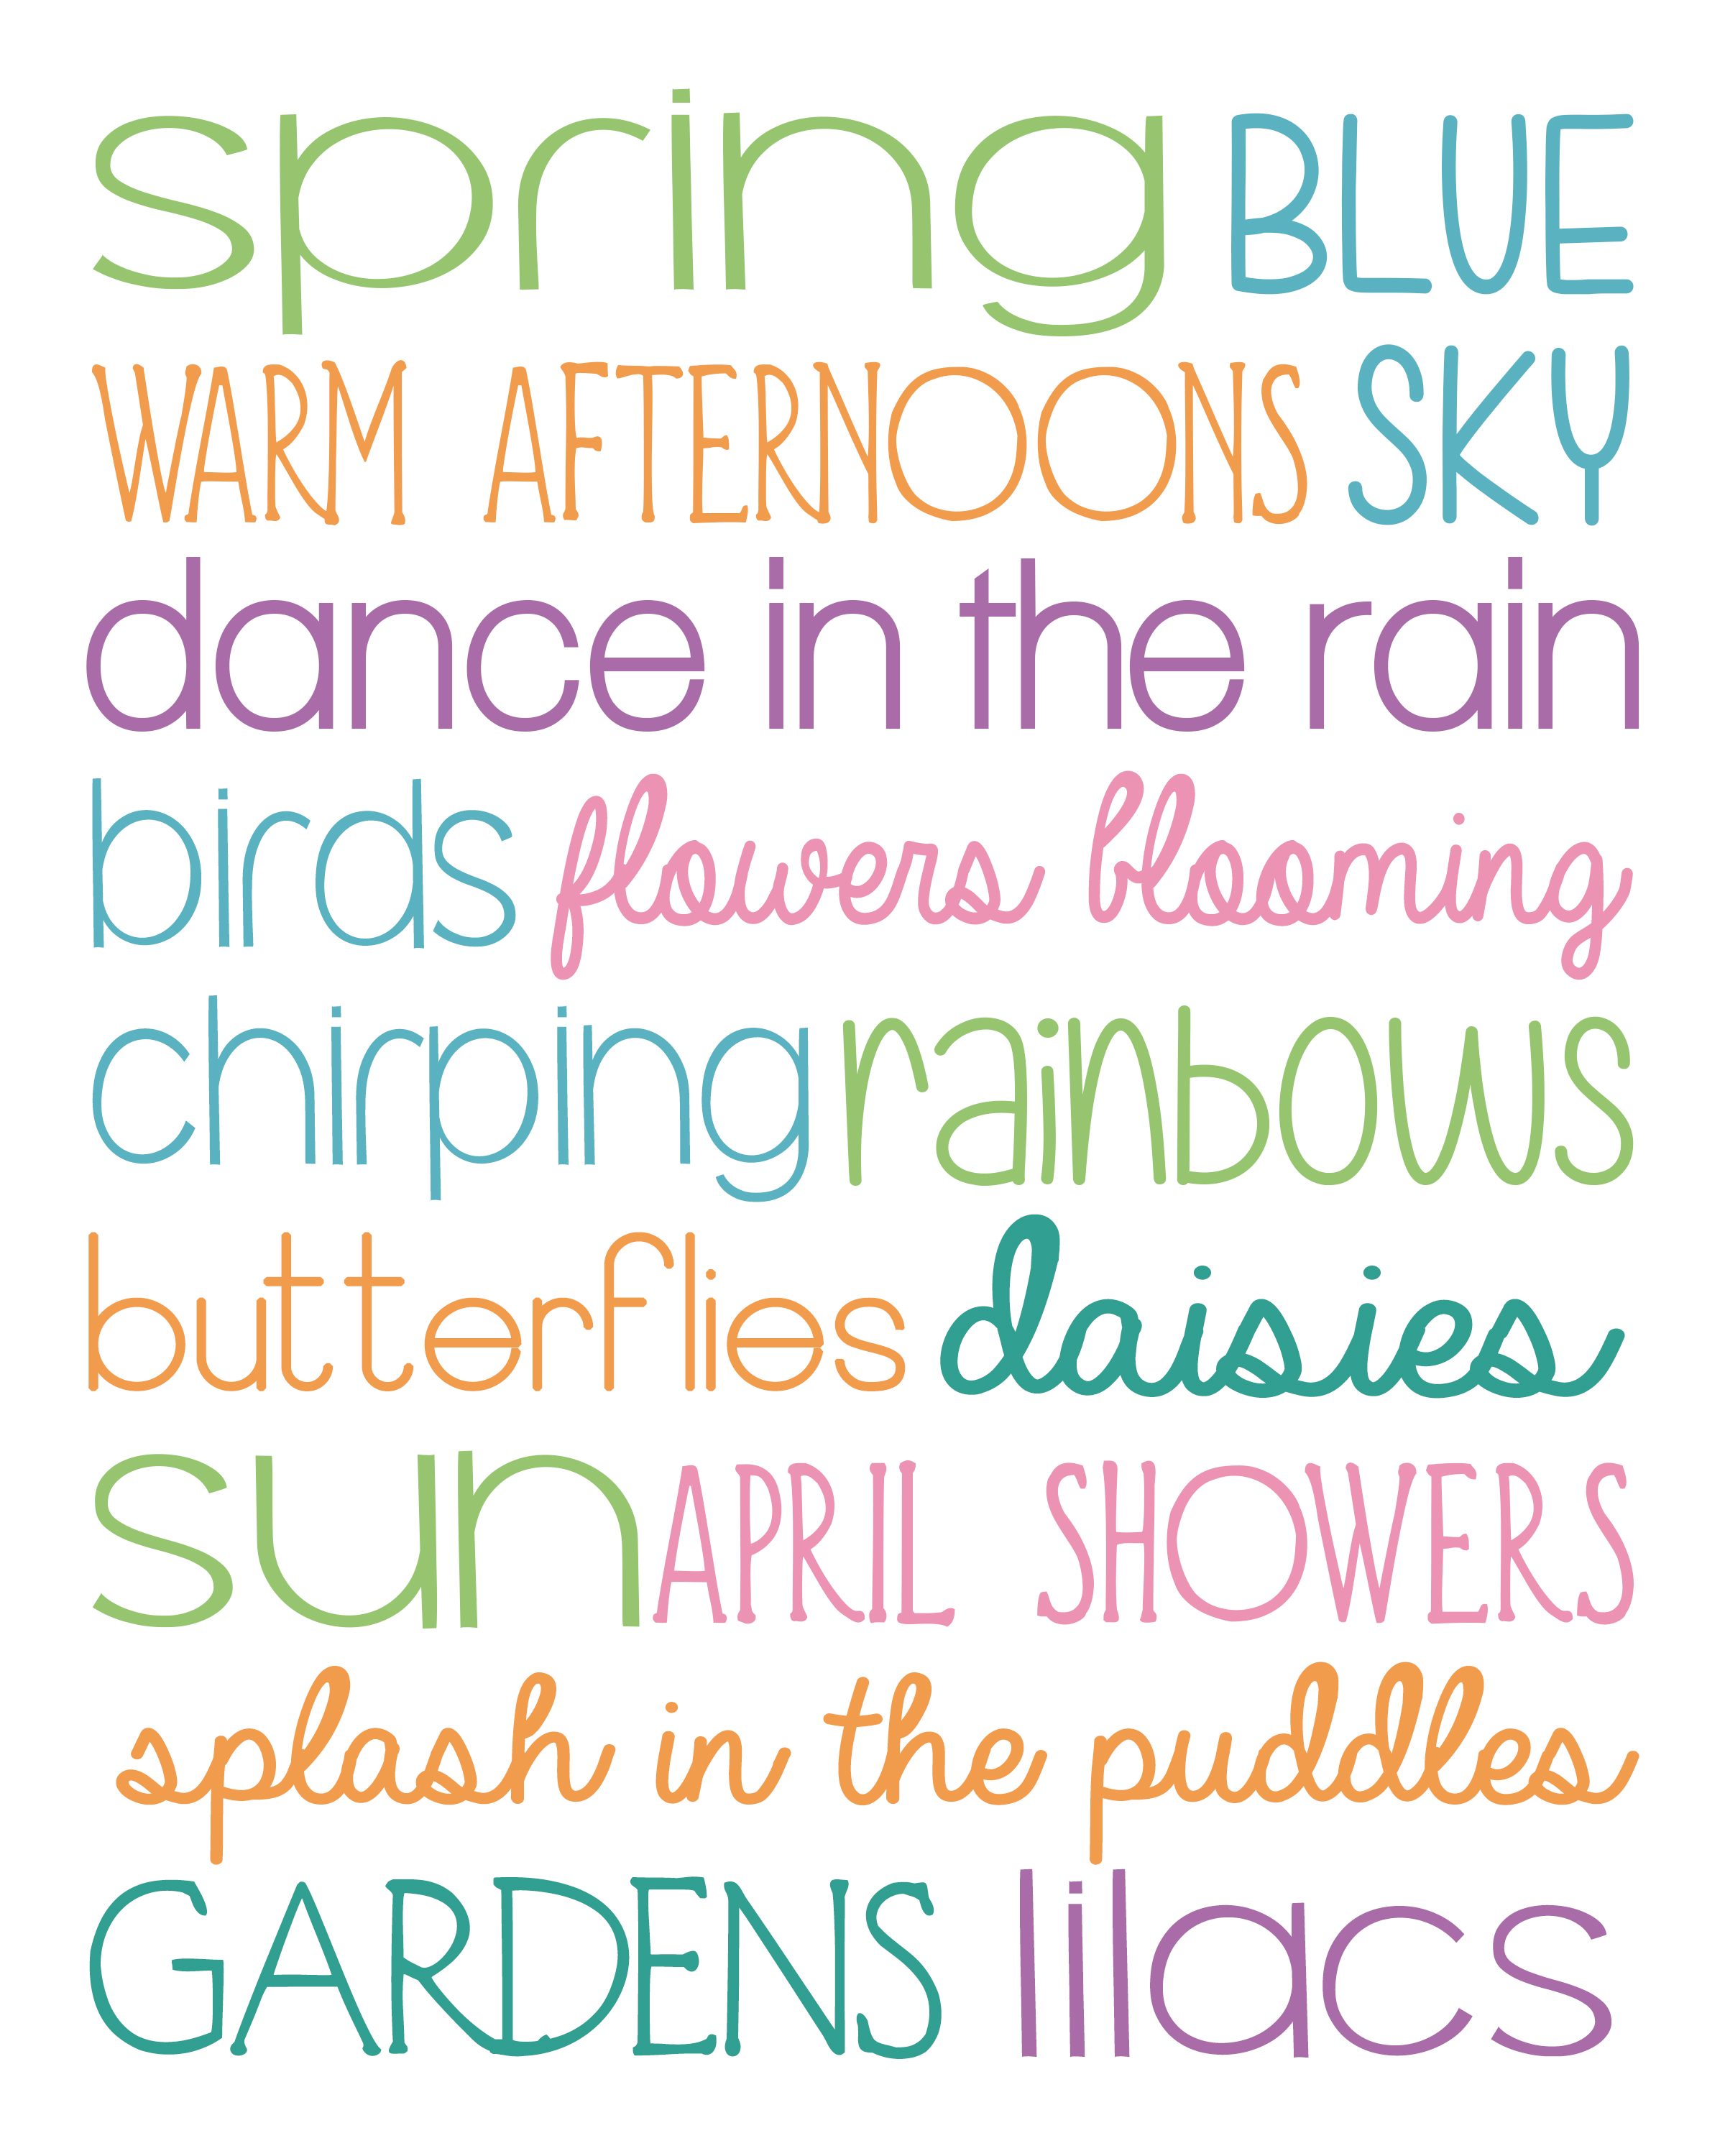 image regarding Spring Printable referred to as Springtime Subway Artwork Printable - Accuracy Printables